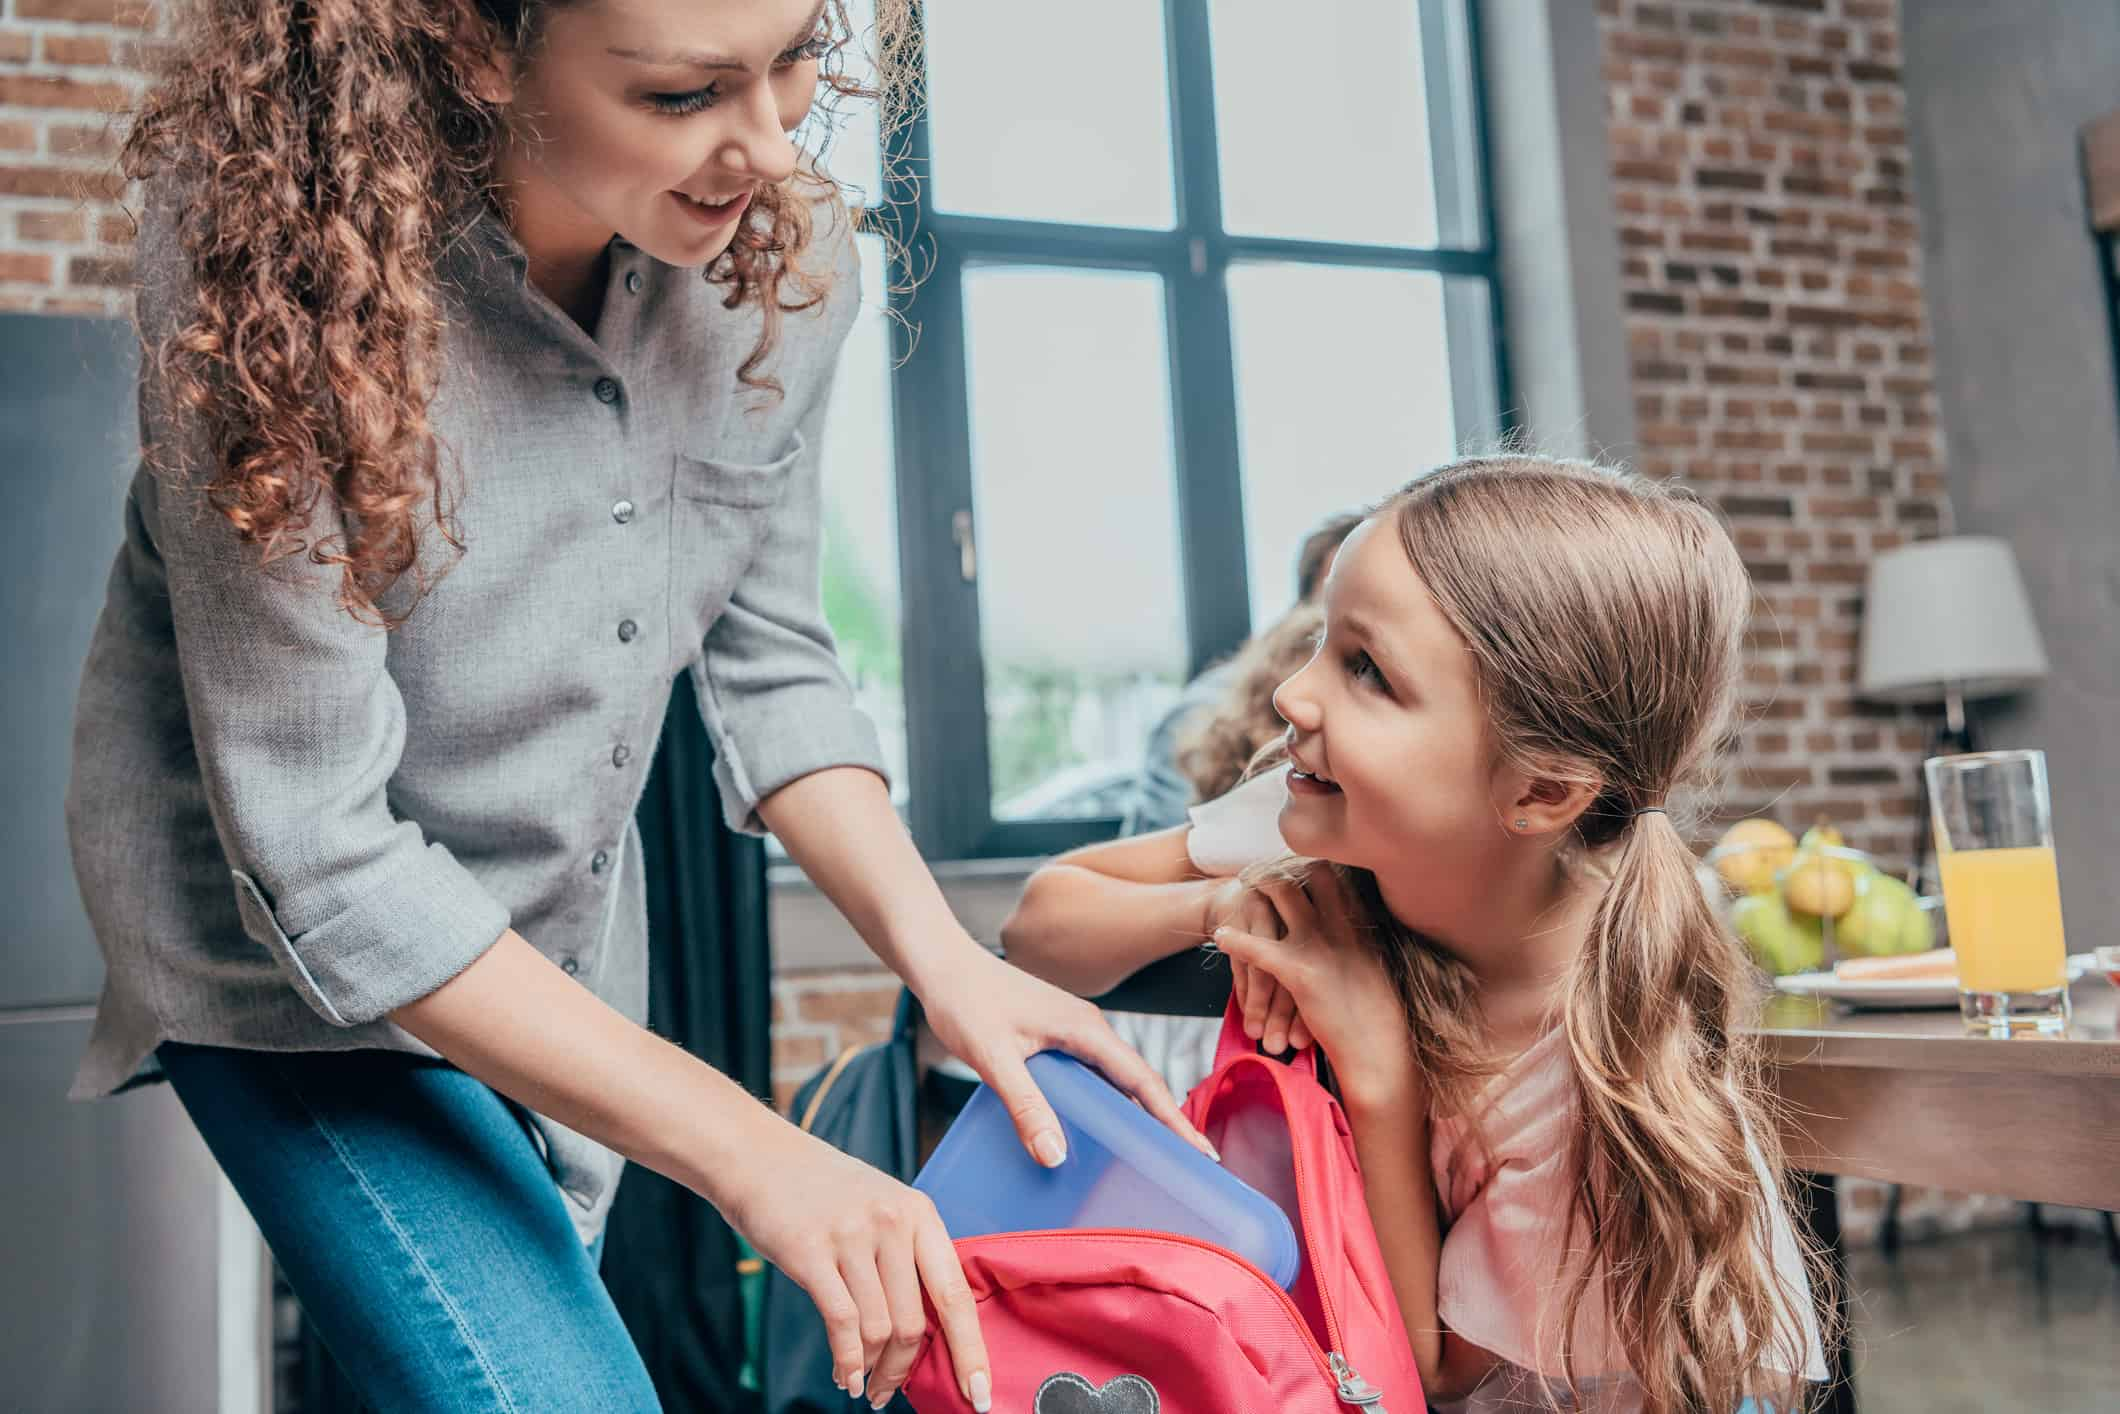 Woman takes daughter back to school shopping